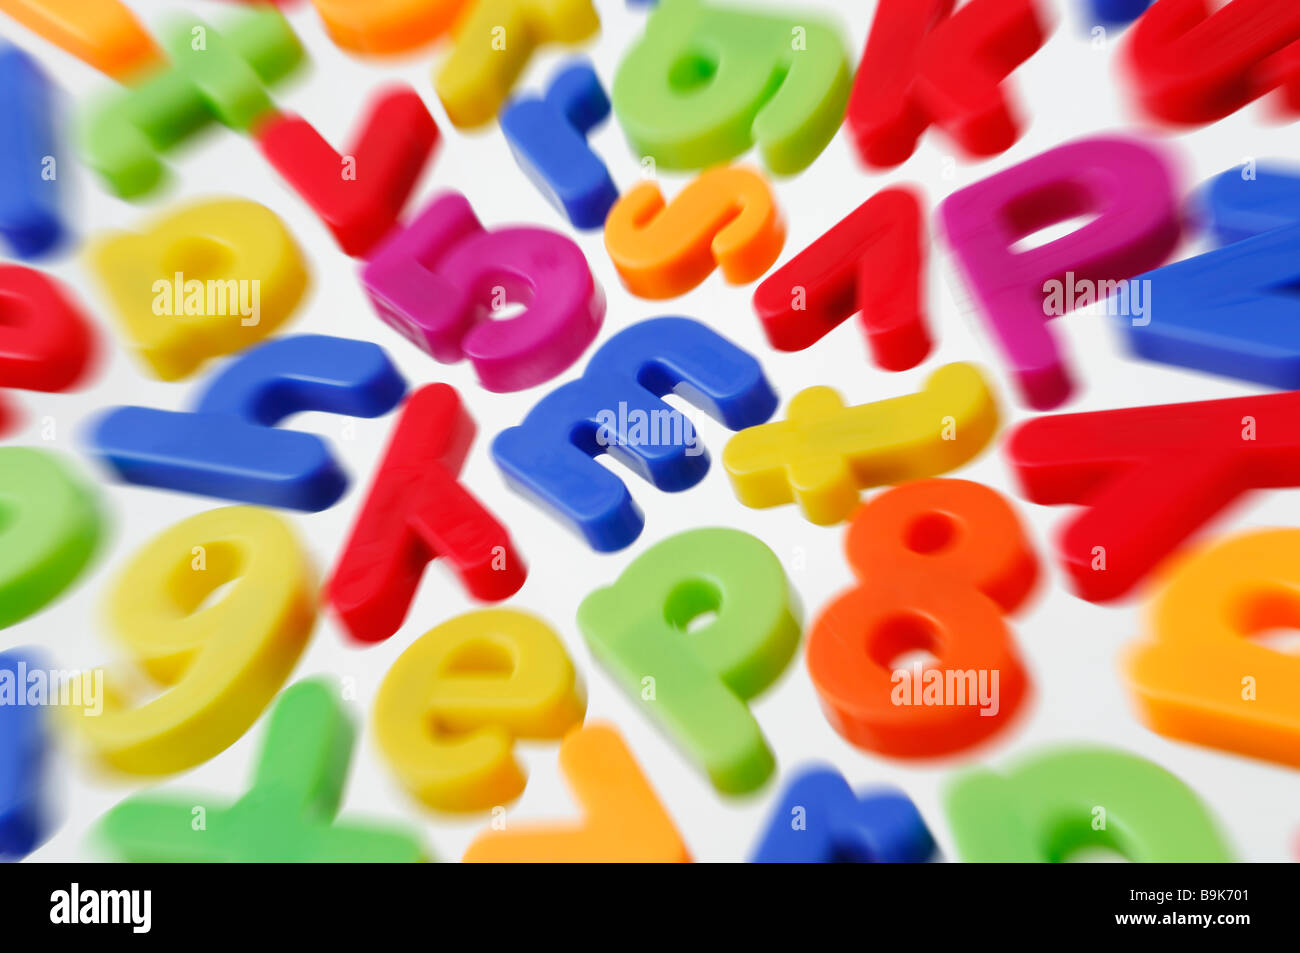 Magnetic Letters - Stock Image